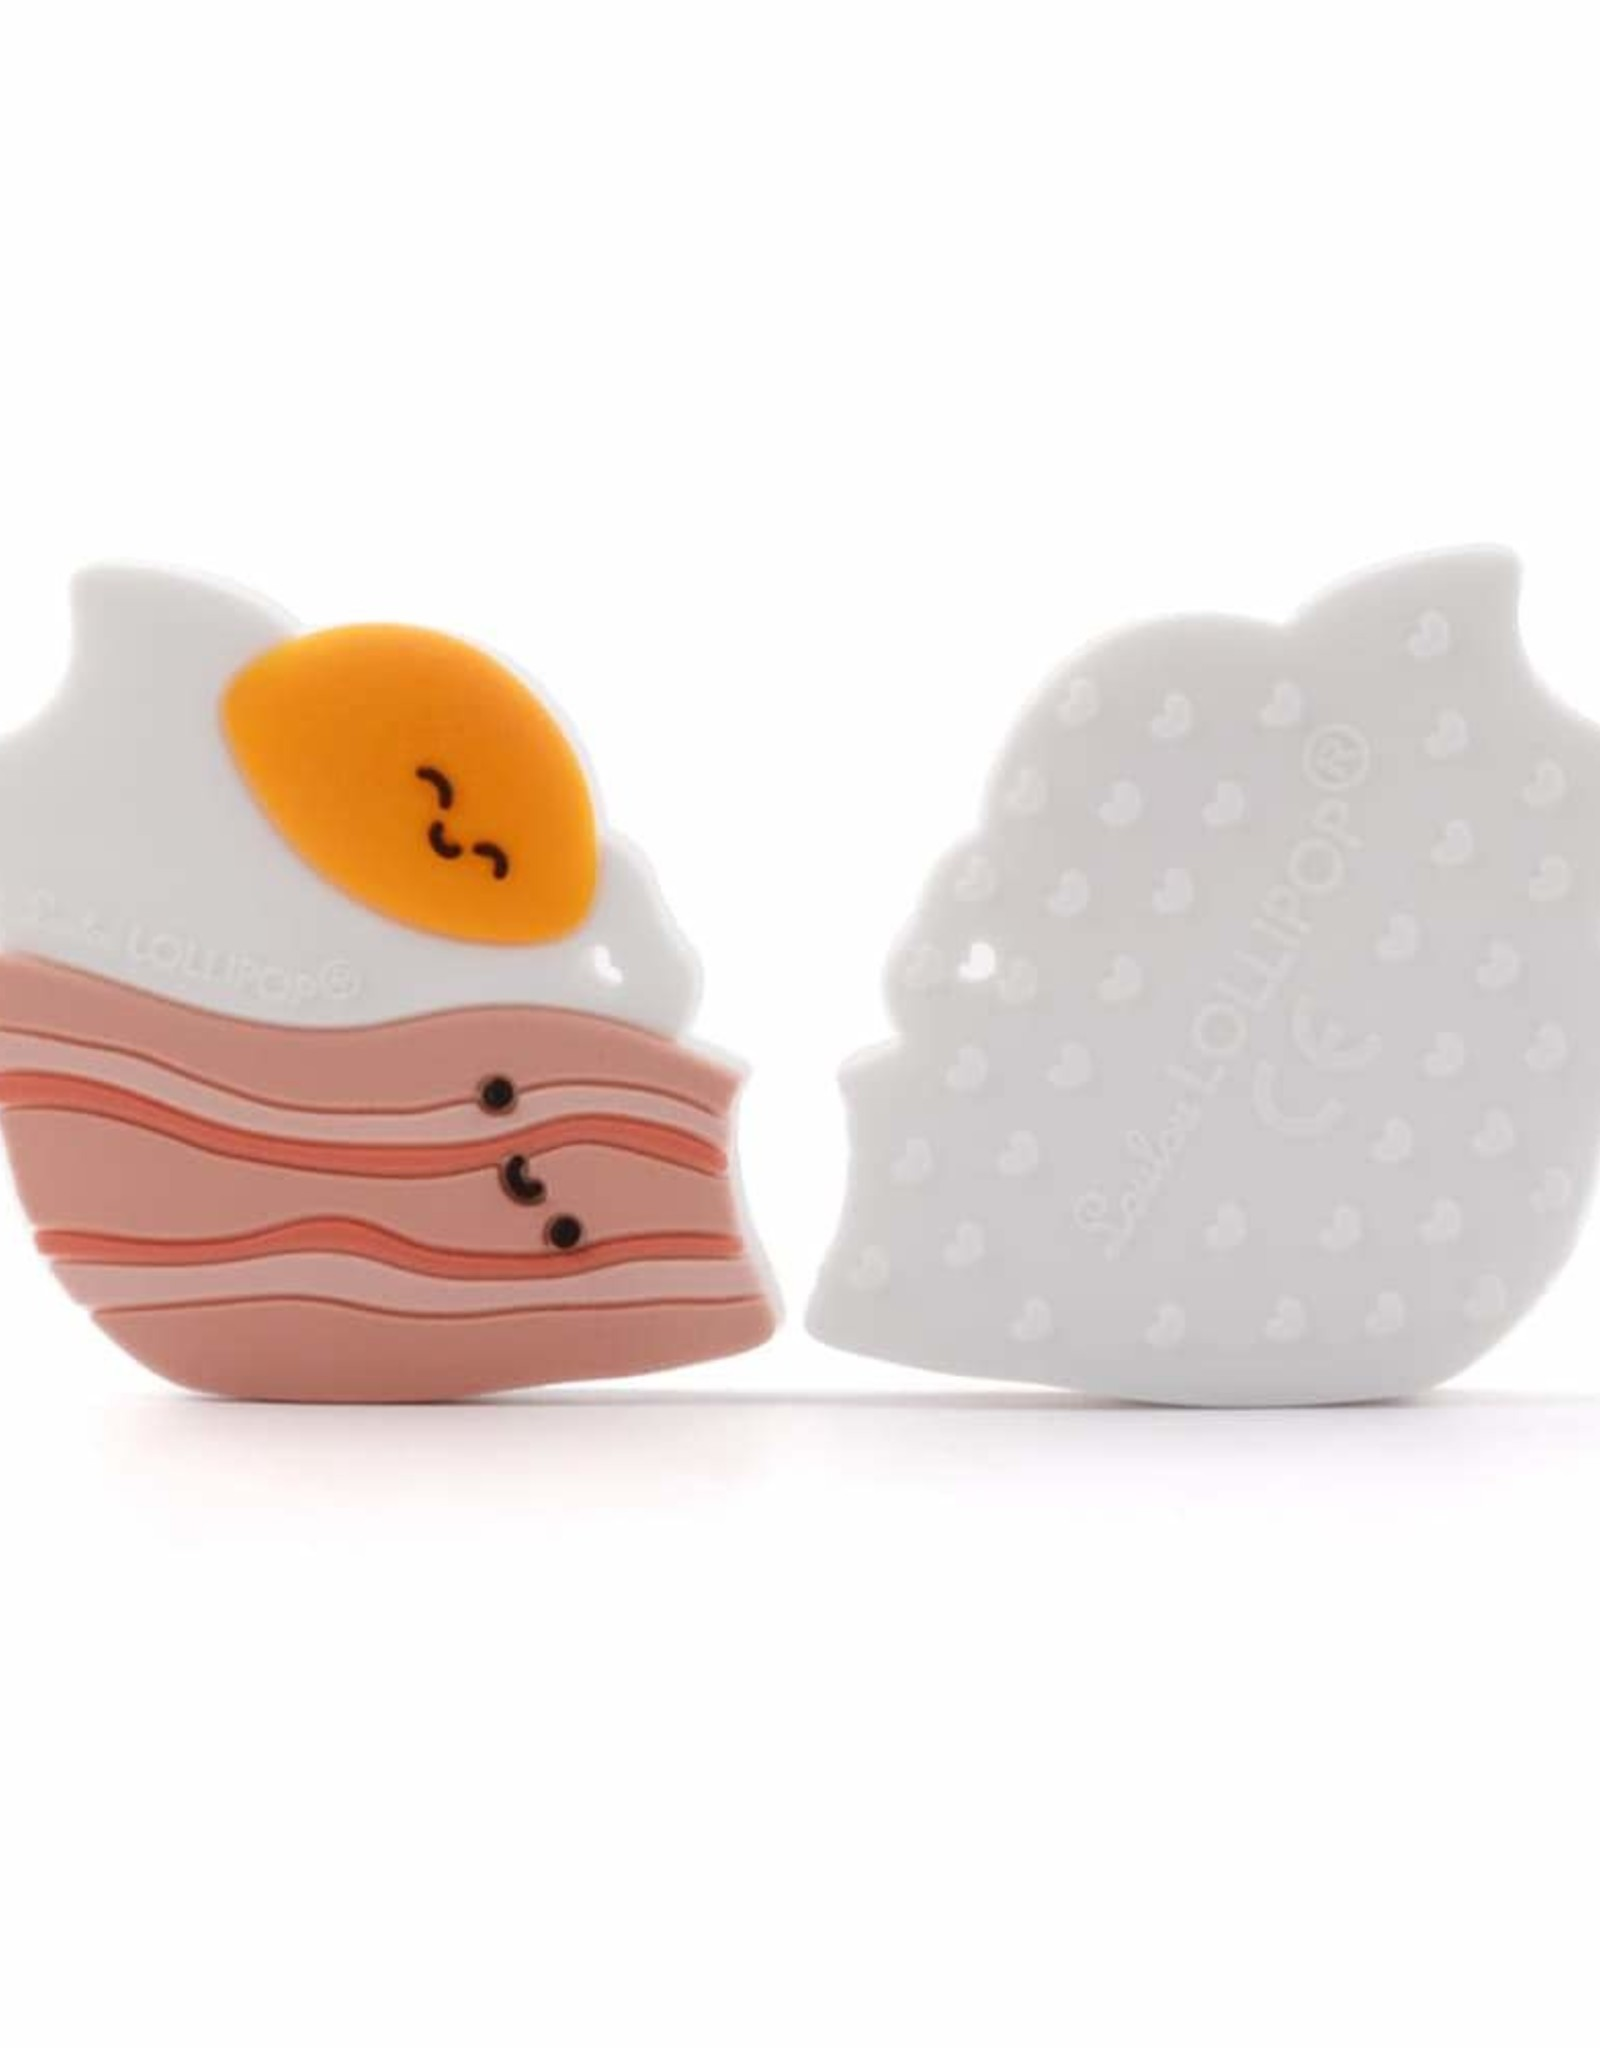 LouLou Lollipop LoulouLOLLIPOP Bacon & Egg Silicone Teether Single